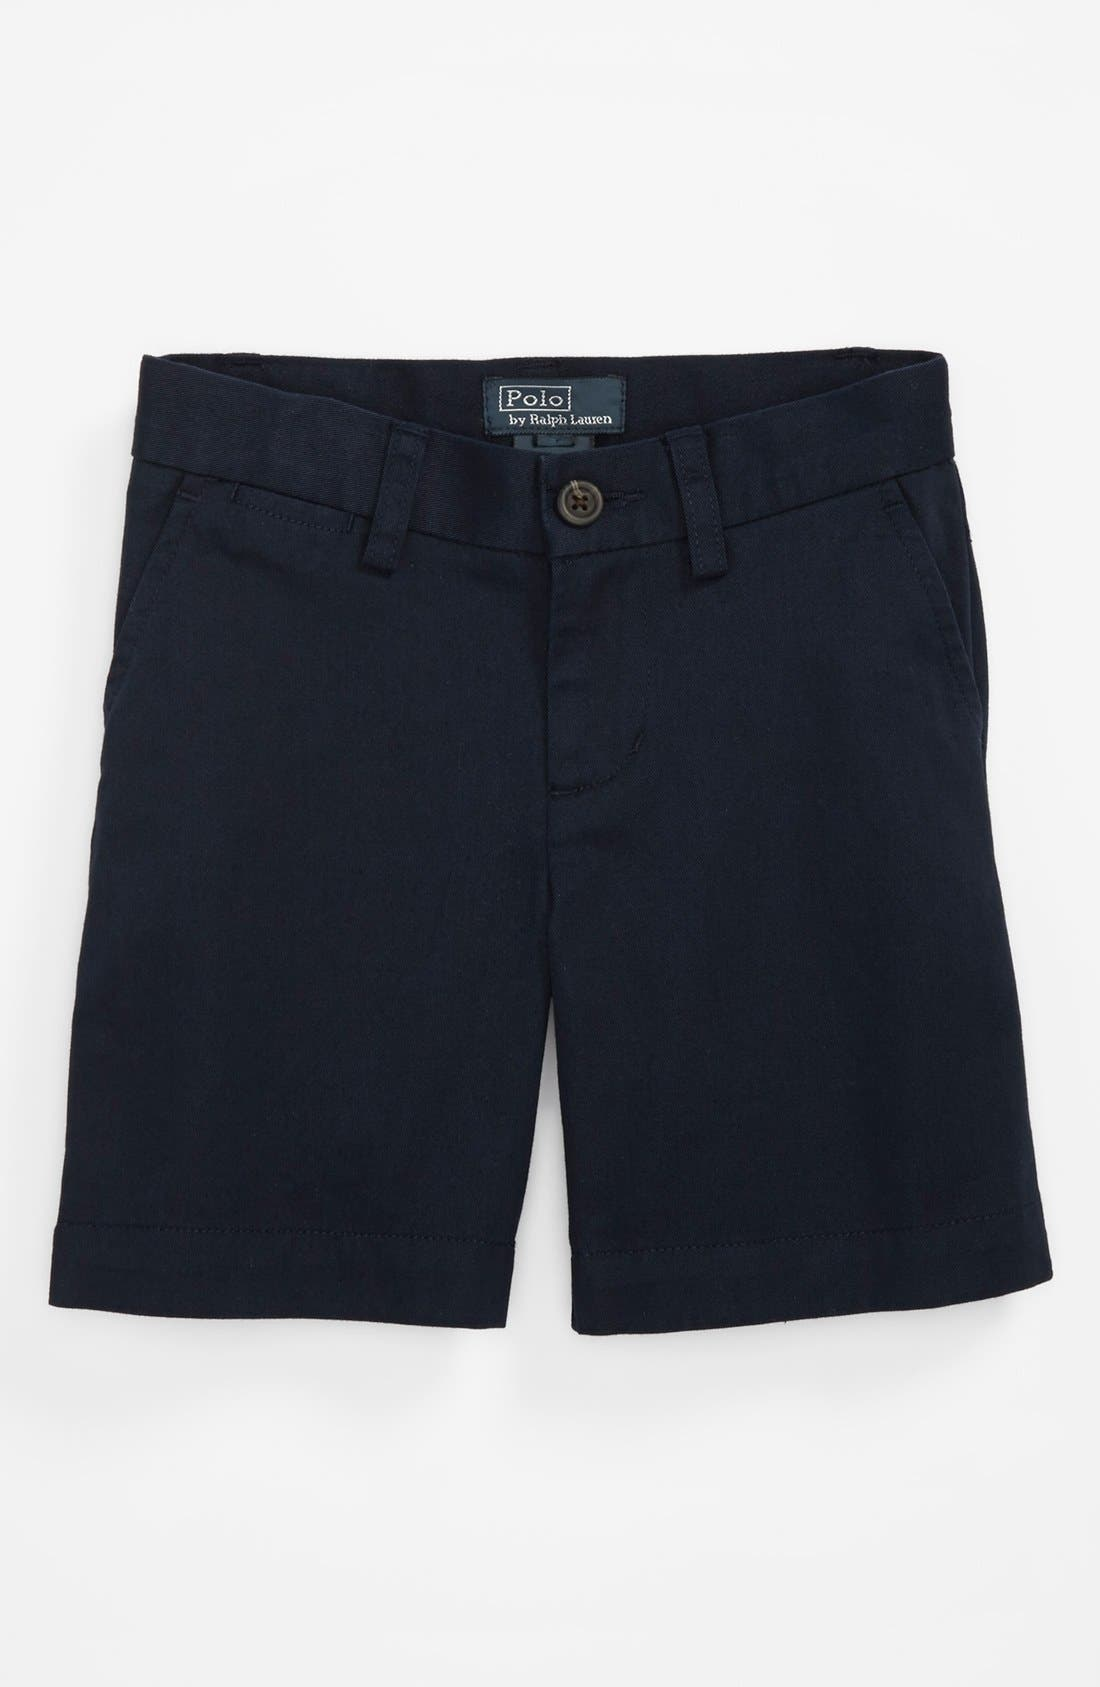 Alternate Image 1 Selected - Ralph Lauren 'Prospect' Shorts (Toddler Boys)